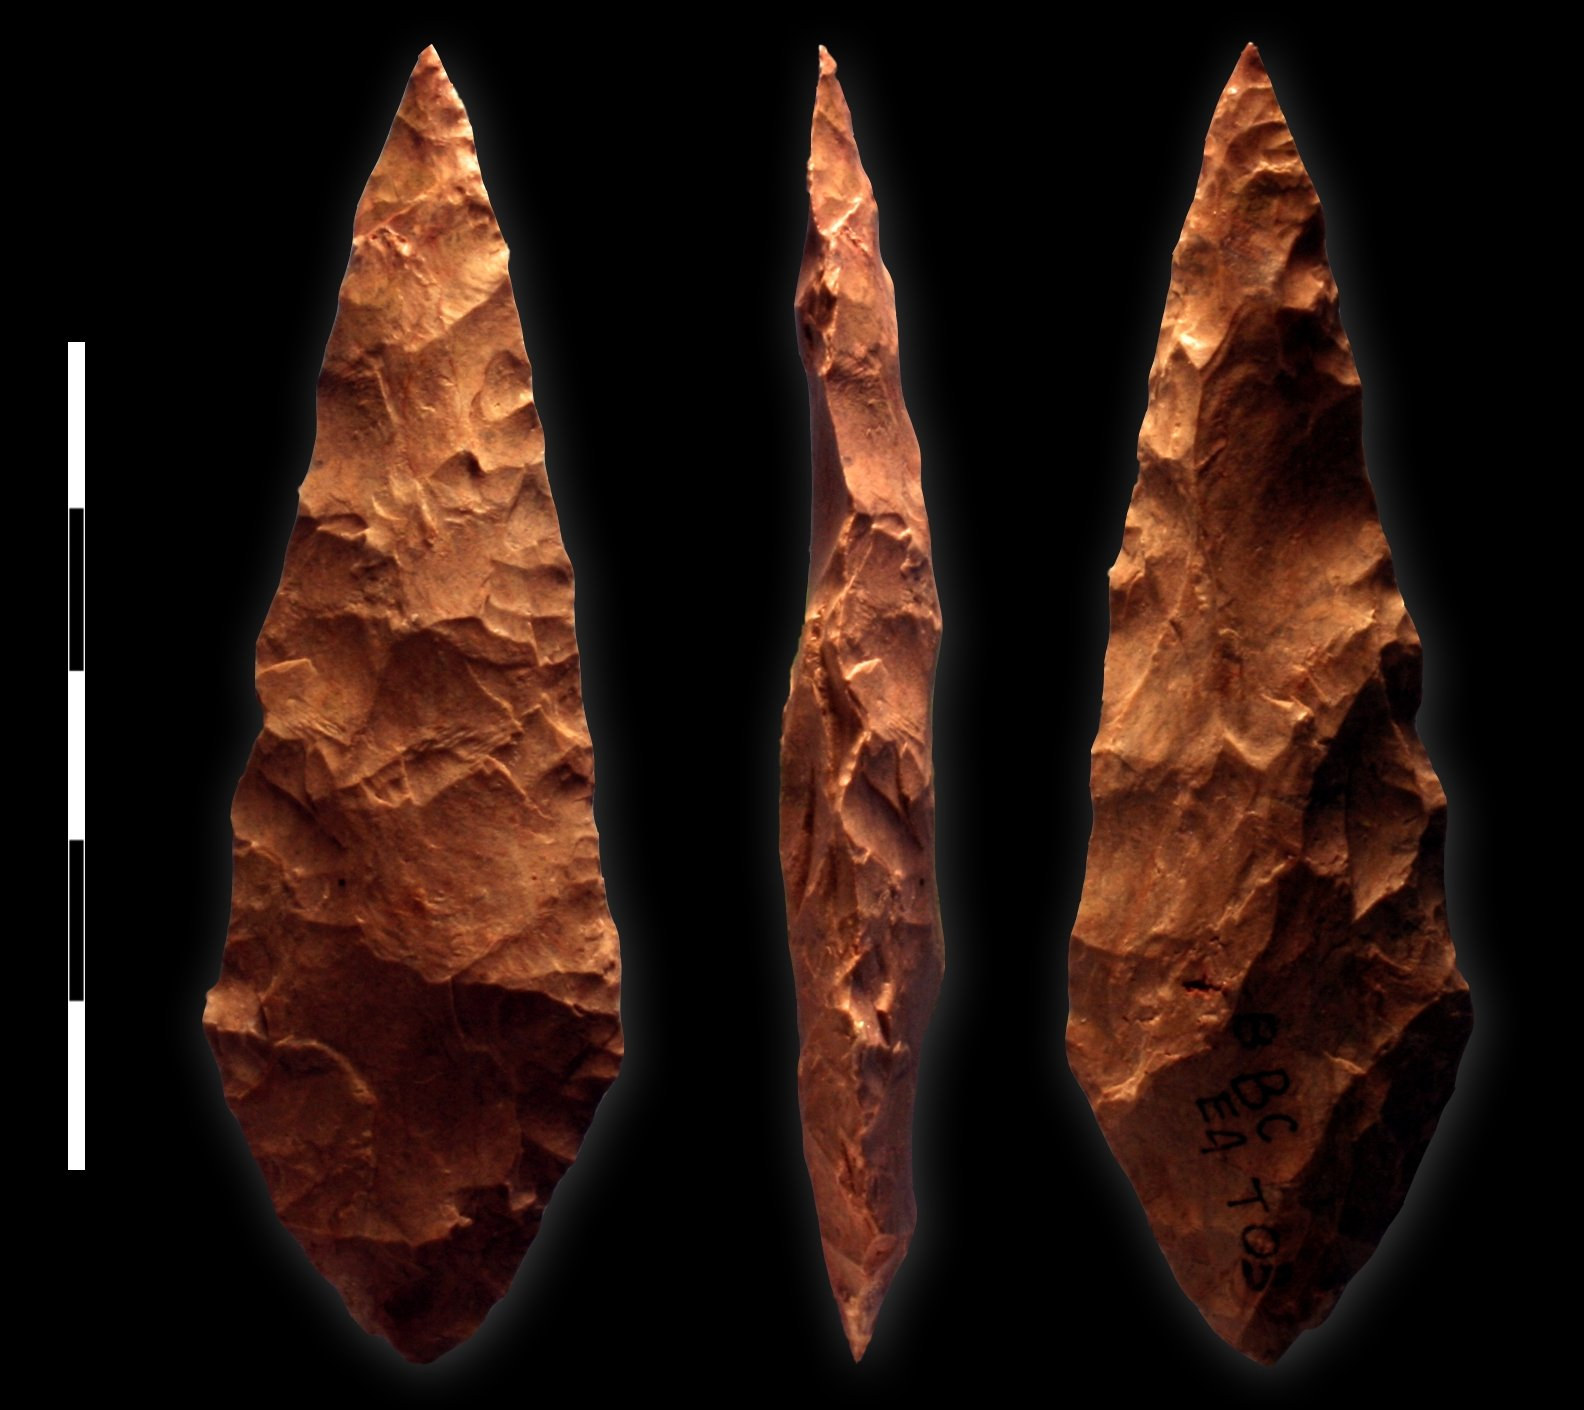 Biface from Blombos Cave, South Africa (Illustration ...